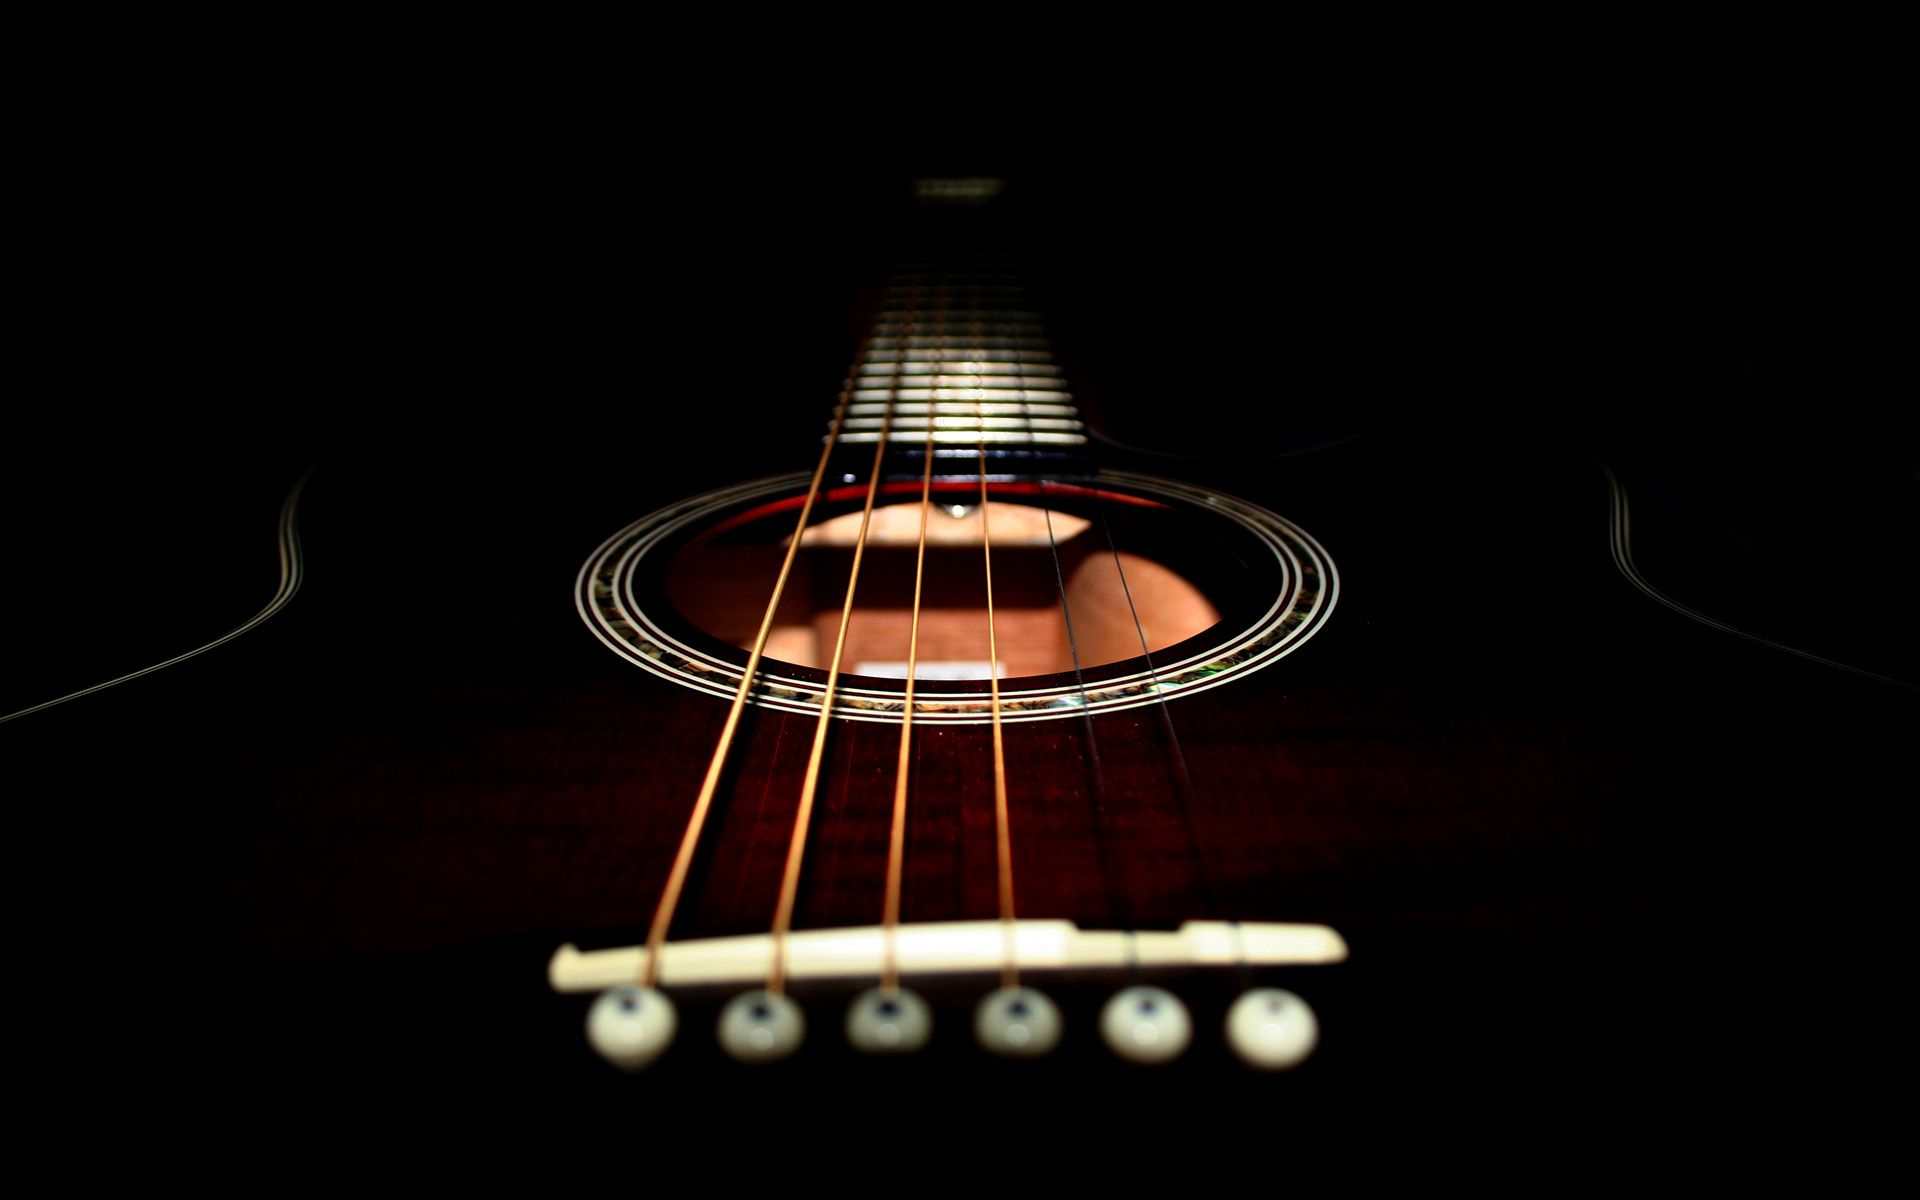 guitarra wallpaper buscar con google guitarras pinterest